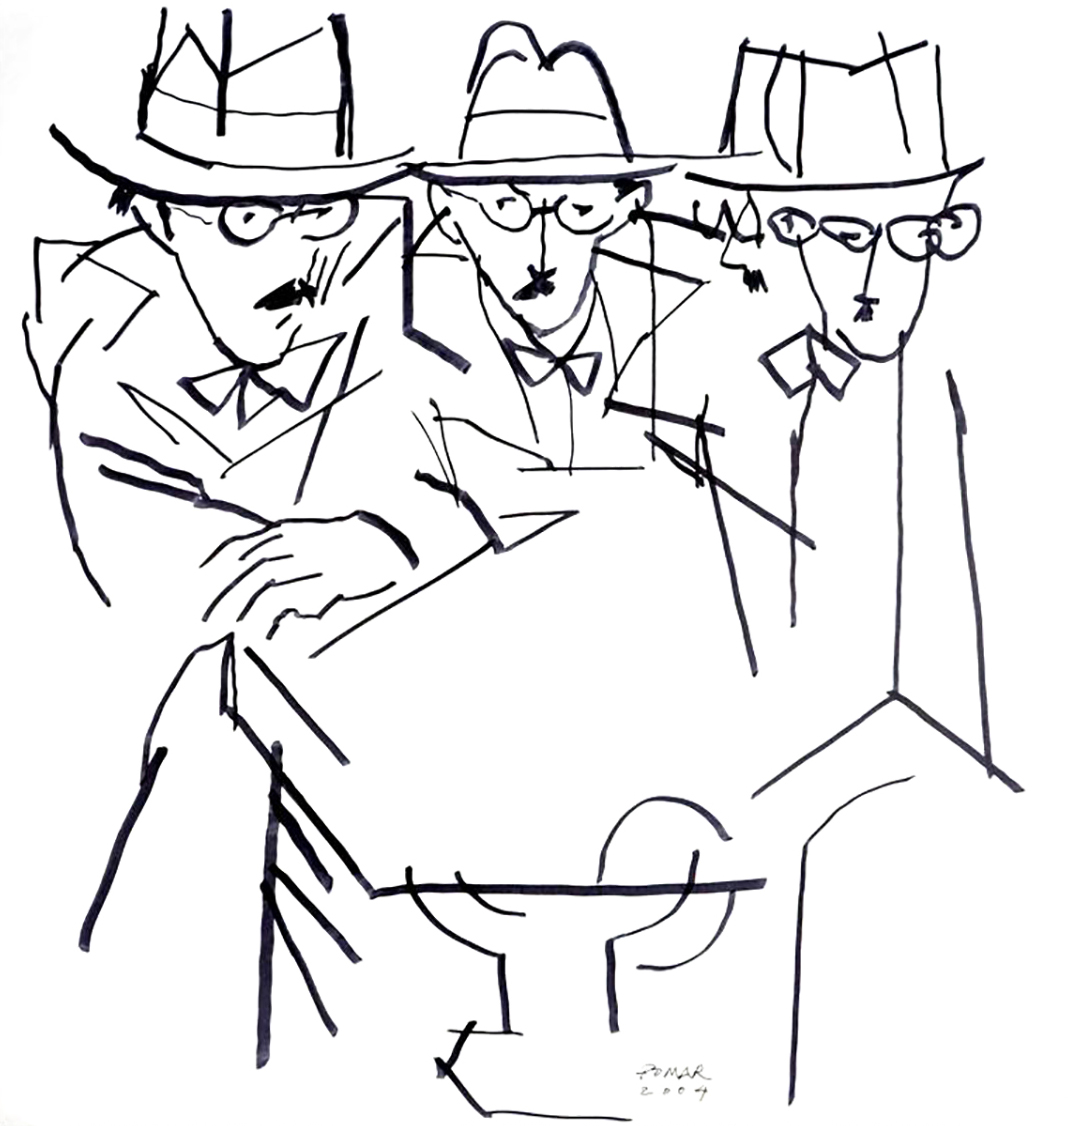 Drawing by Júlio Pomar, a Portuguese Modernist painter, sitting Fernando Pessoa and some of his heteronyms at the same table.